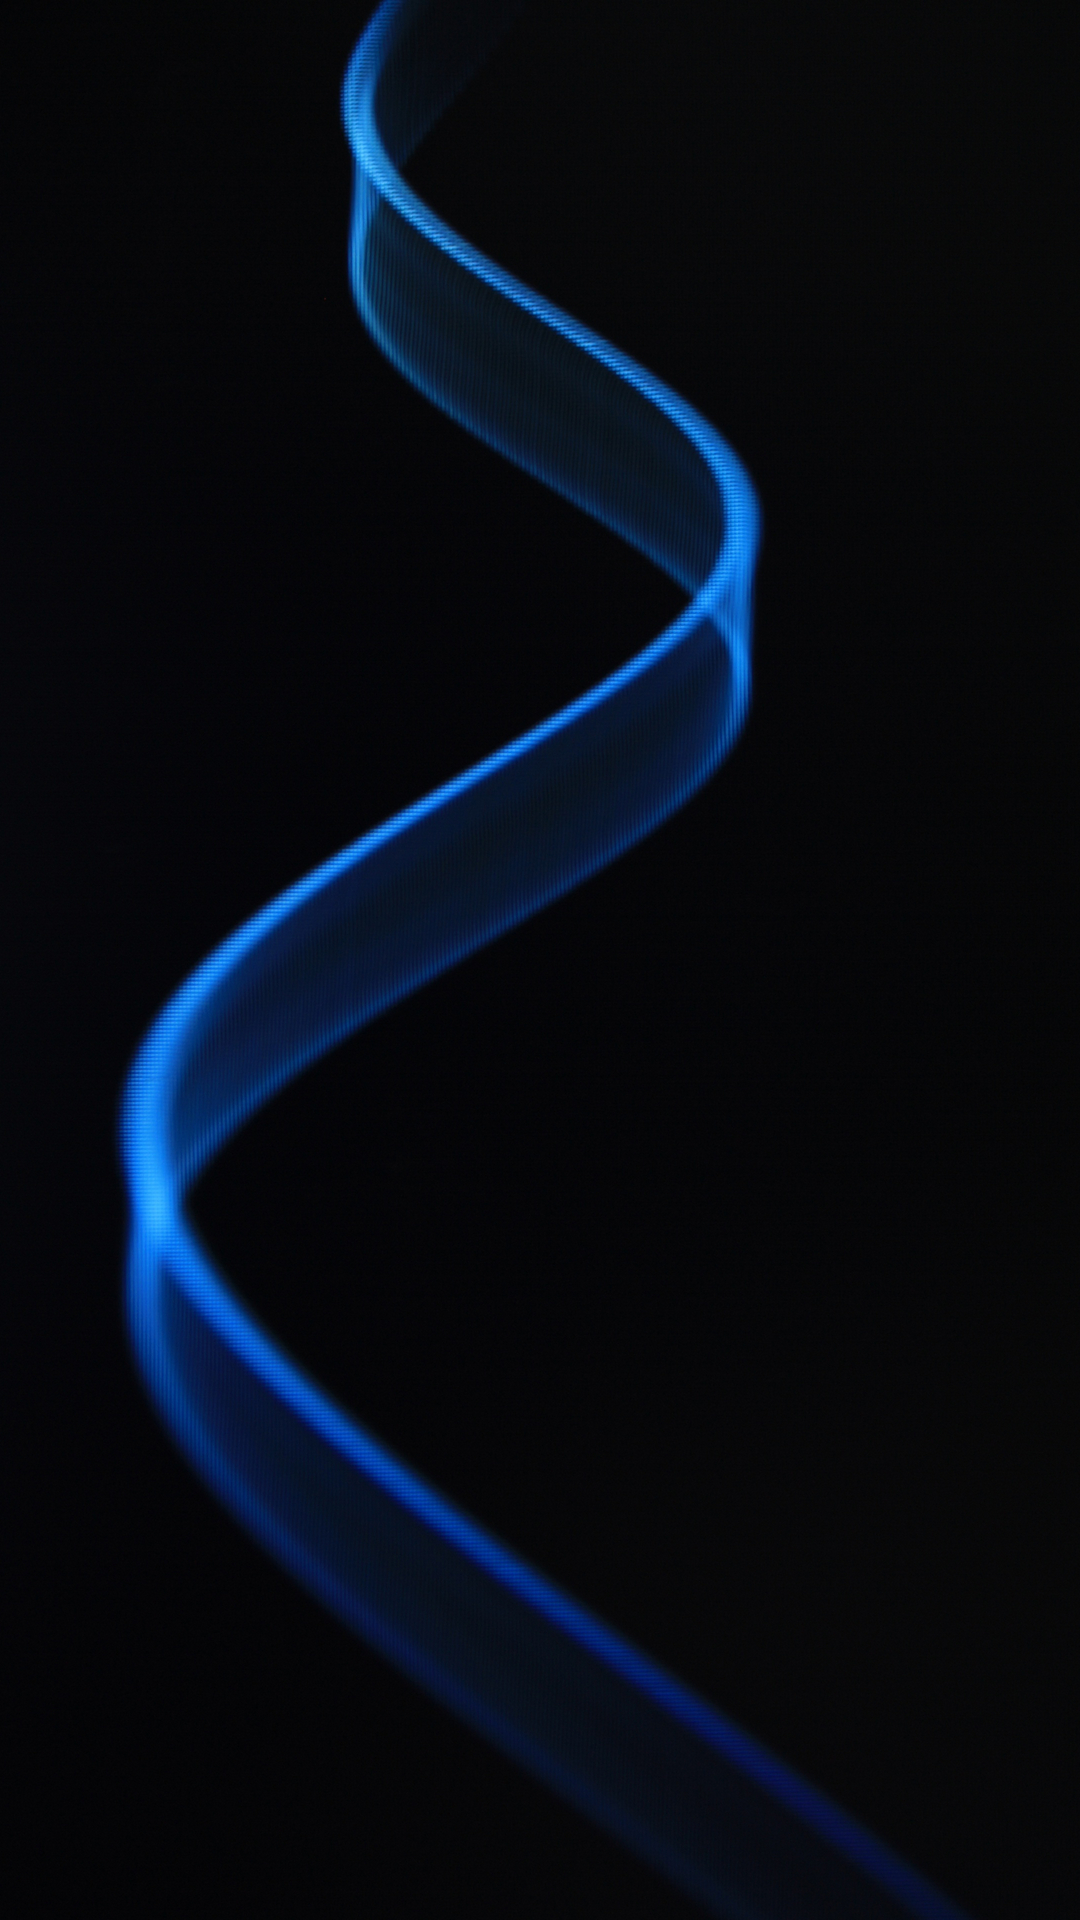 Wallpapers for galaxy blue dna shape background with blue design on black for galaxy s4 in 1080x1920 resolution voltagebd Gallery